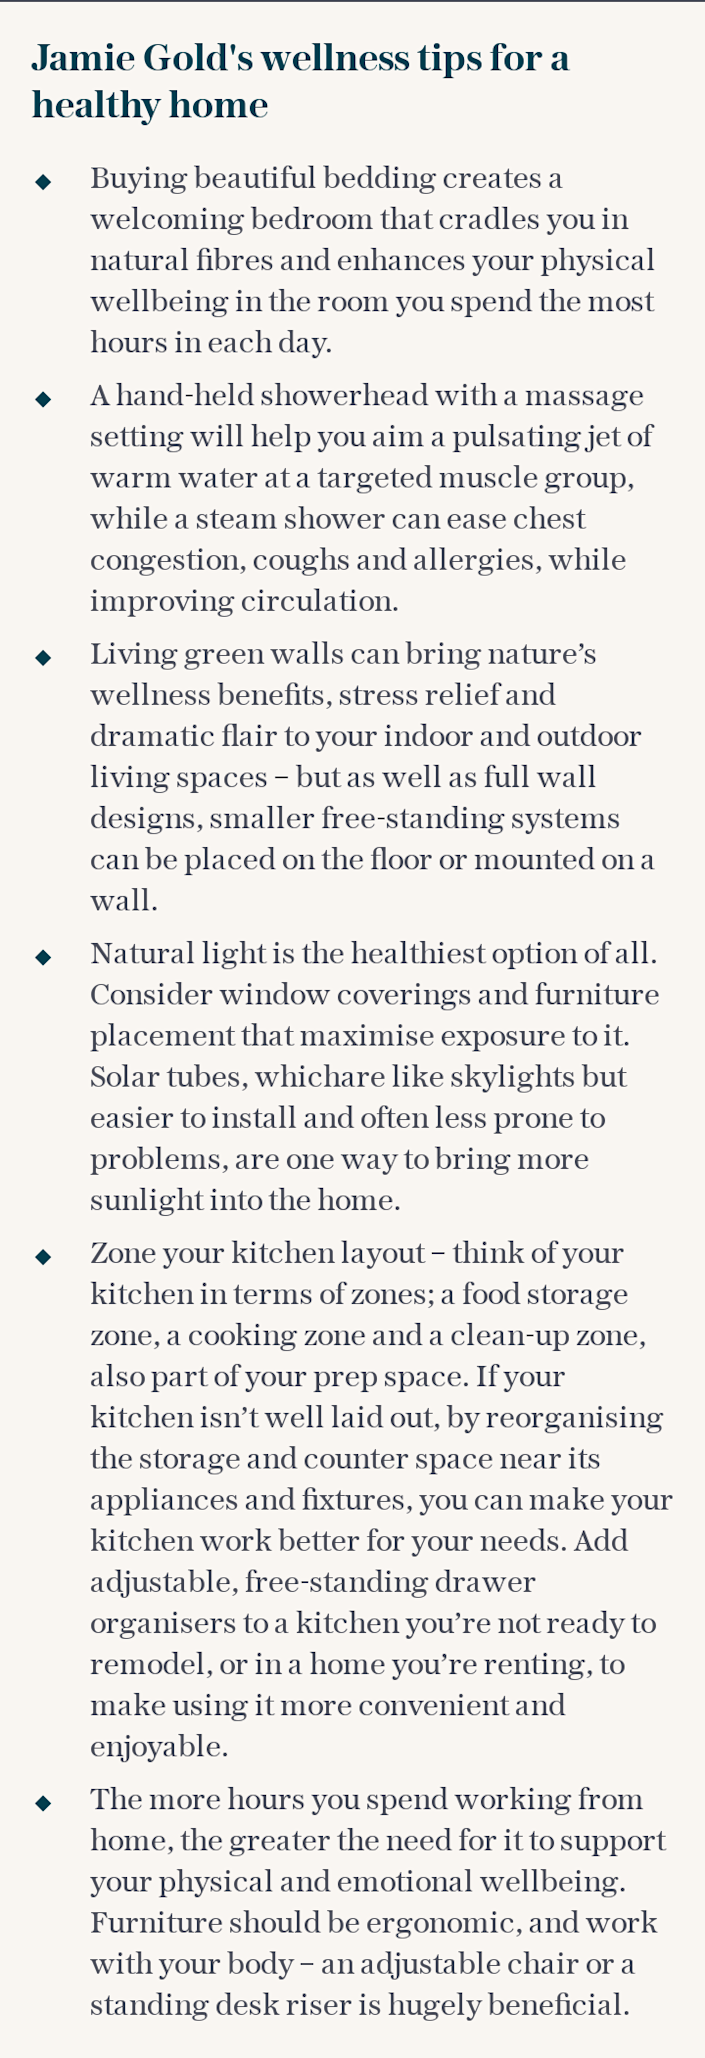 Jamie Gold's wellness tips for a healthy home